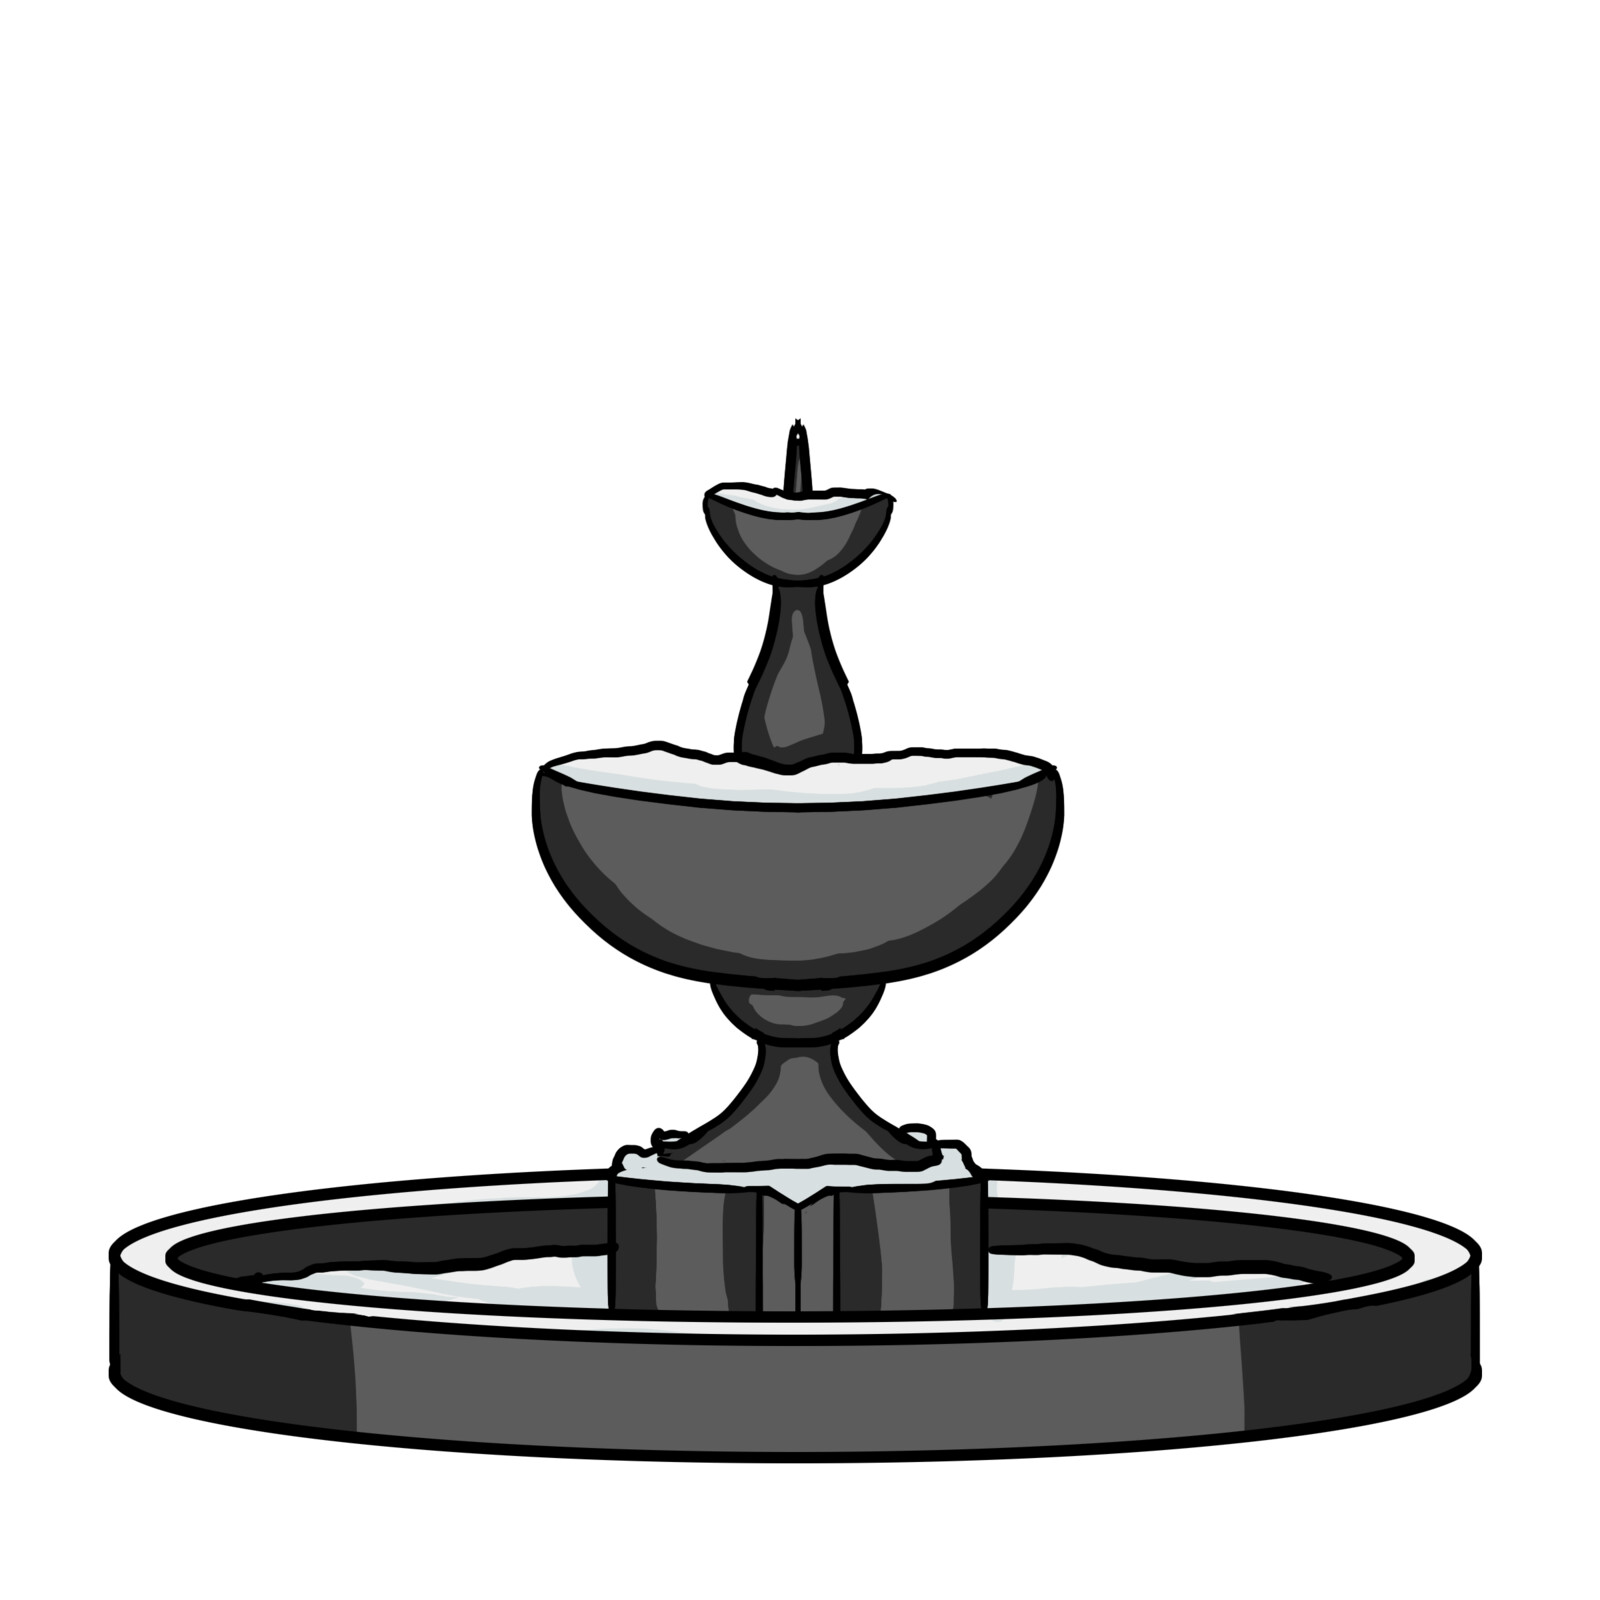 Background sprite - a fountain